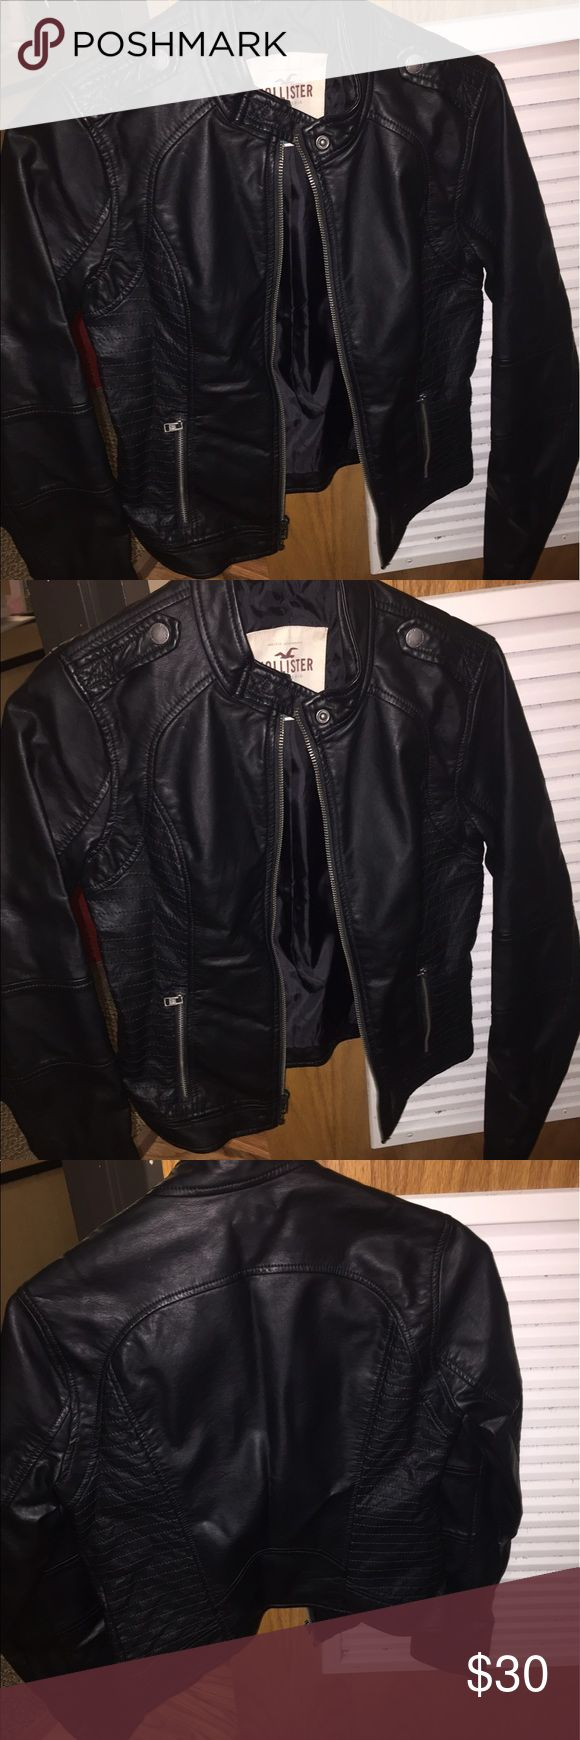 Black leather Hollister jacket size small I've only worn it twice- good condition just a couple strings! Hollister Jackets & Coats